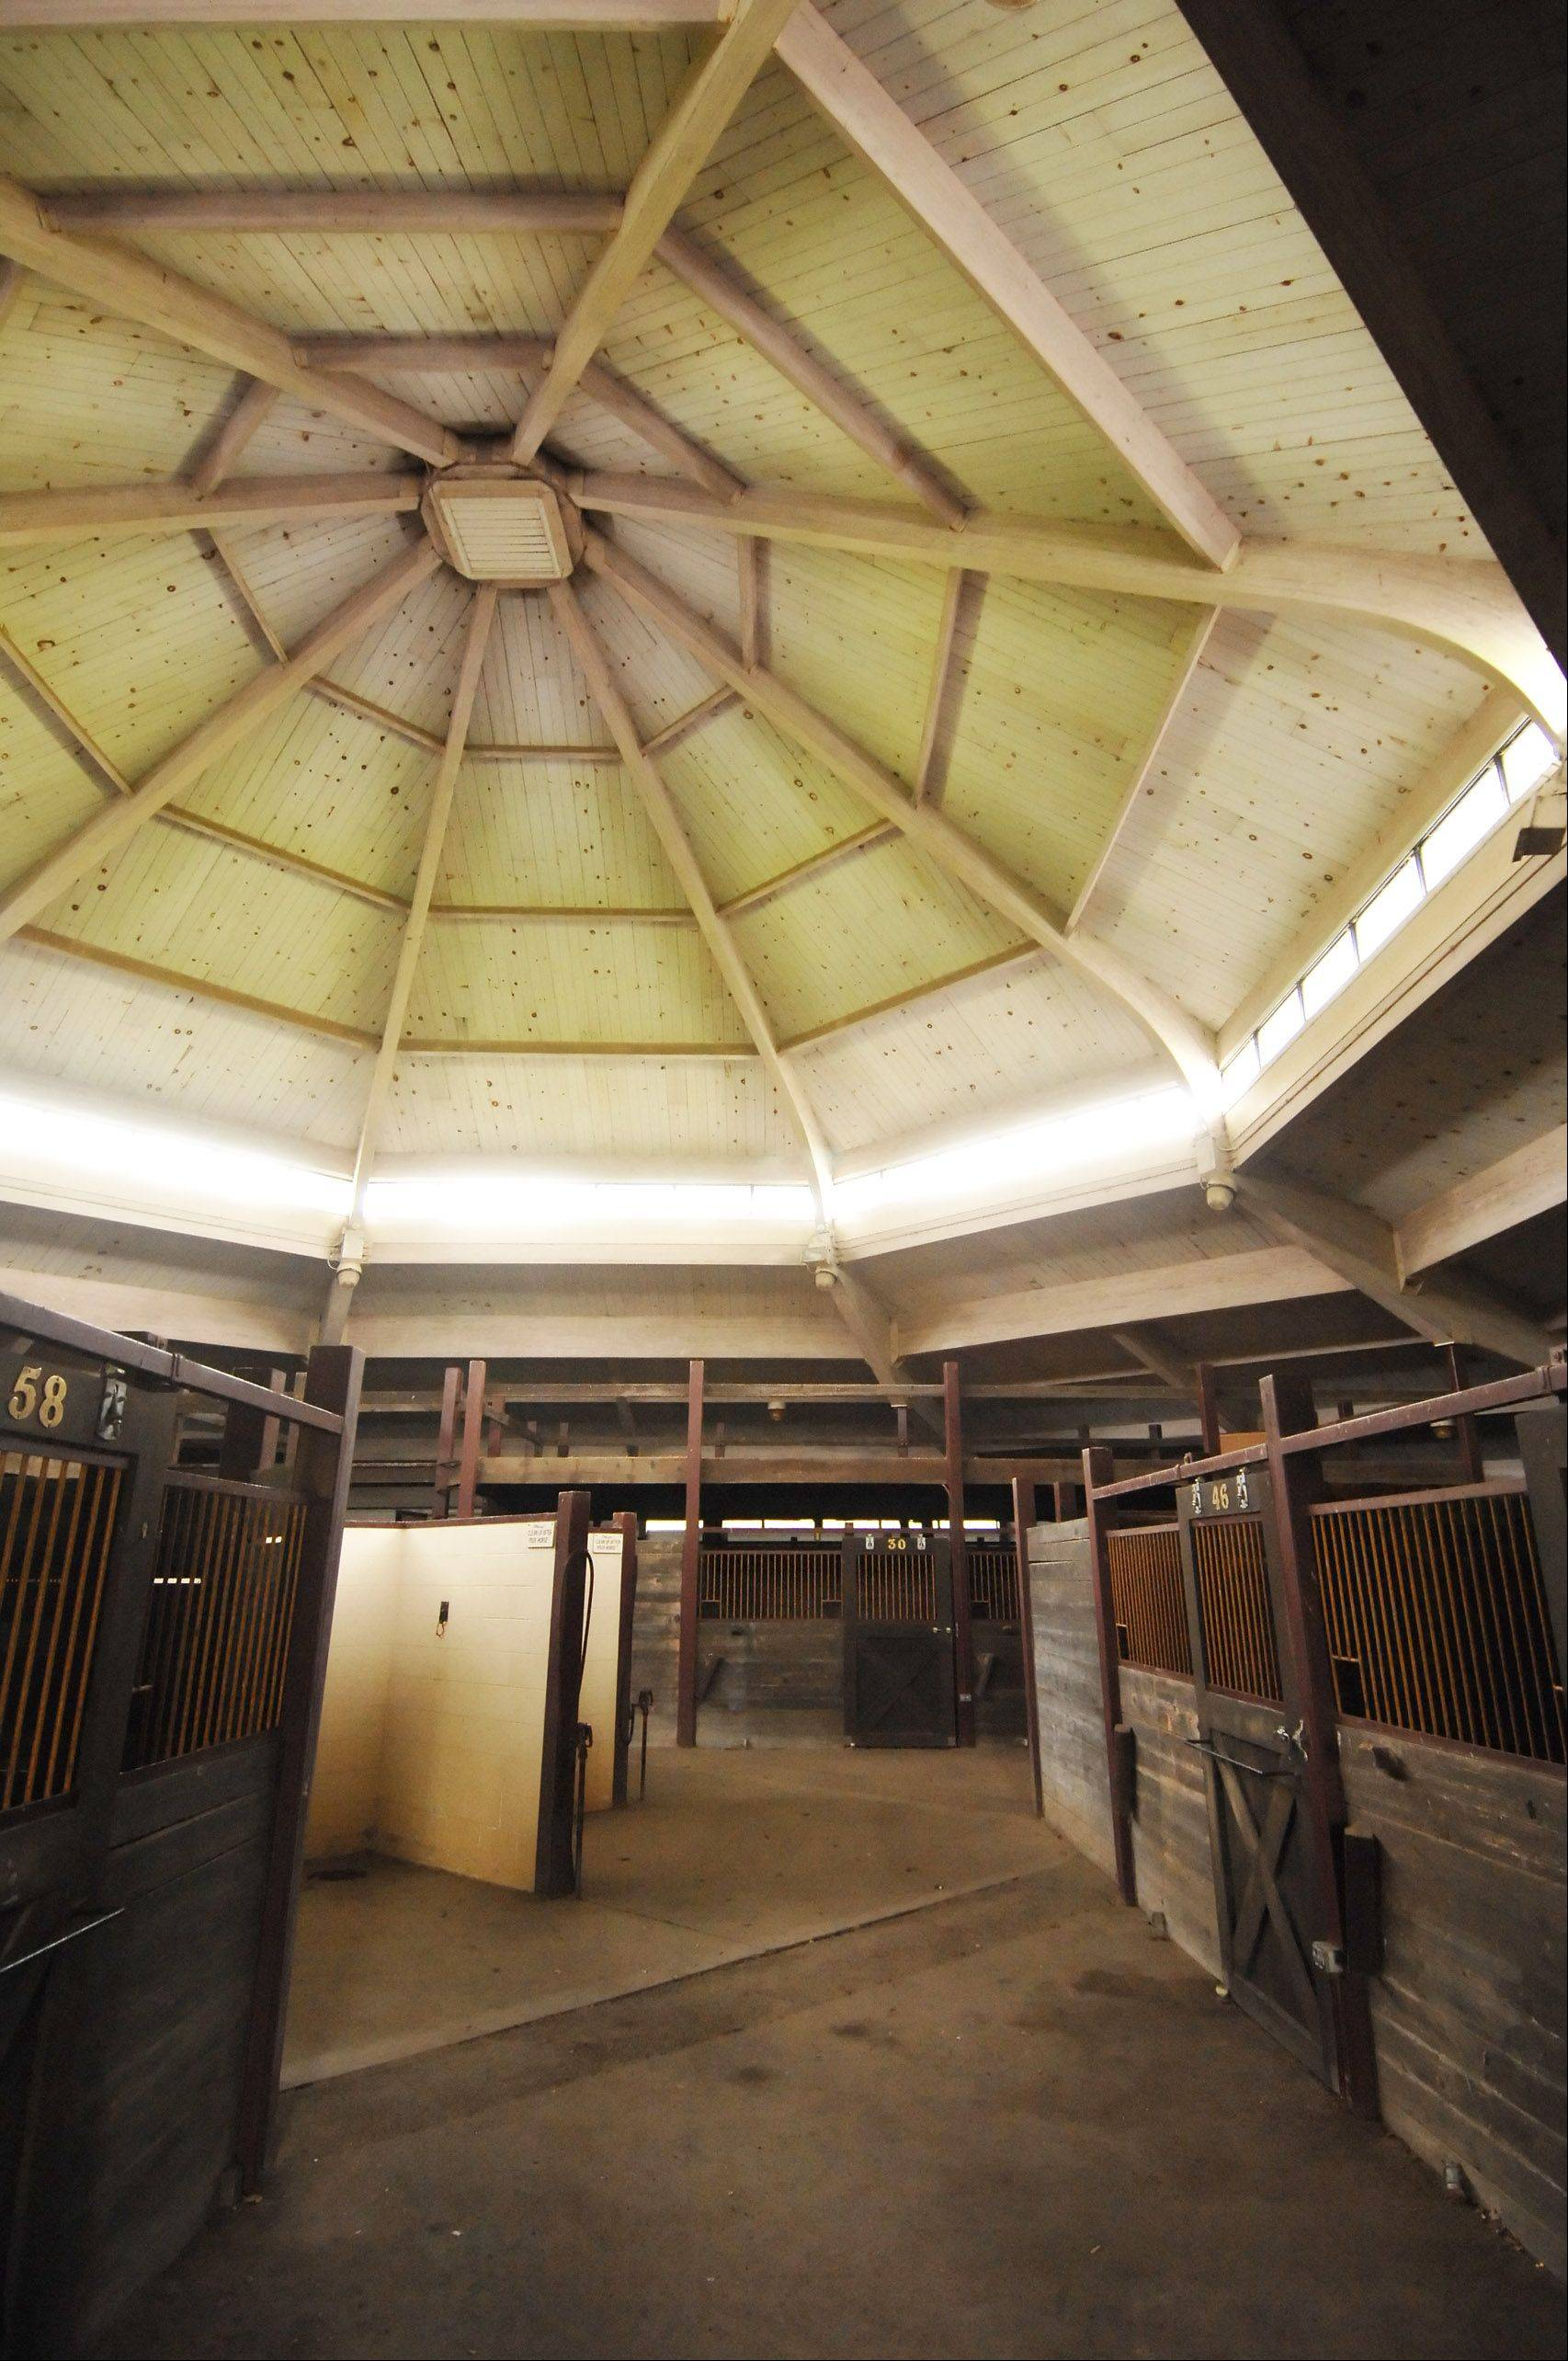 DuPage County Forest Preserve officials are debating whether areas like the show barn at St. James Farm near Warrenville will receive $2.7 million in upgrades.